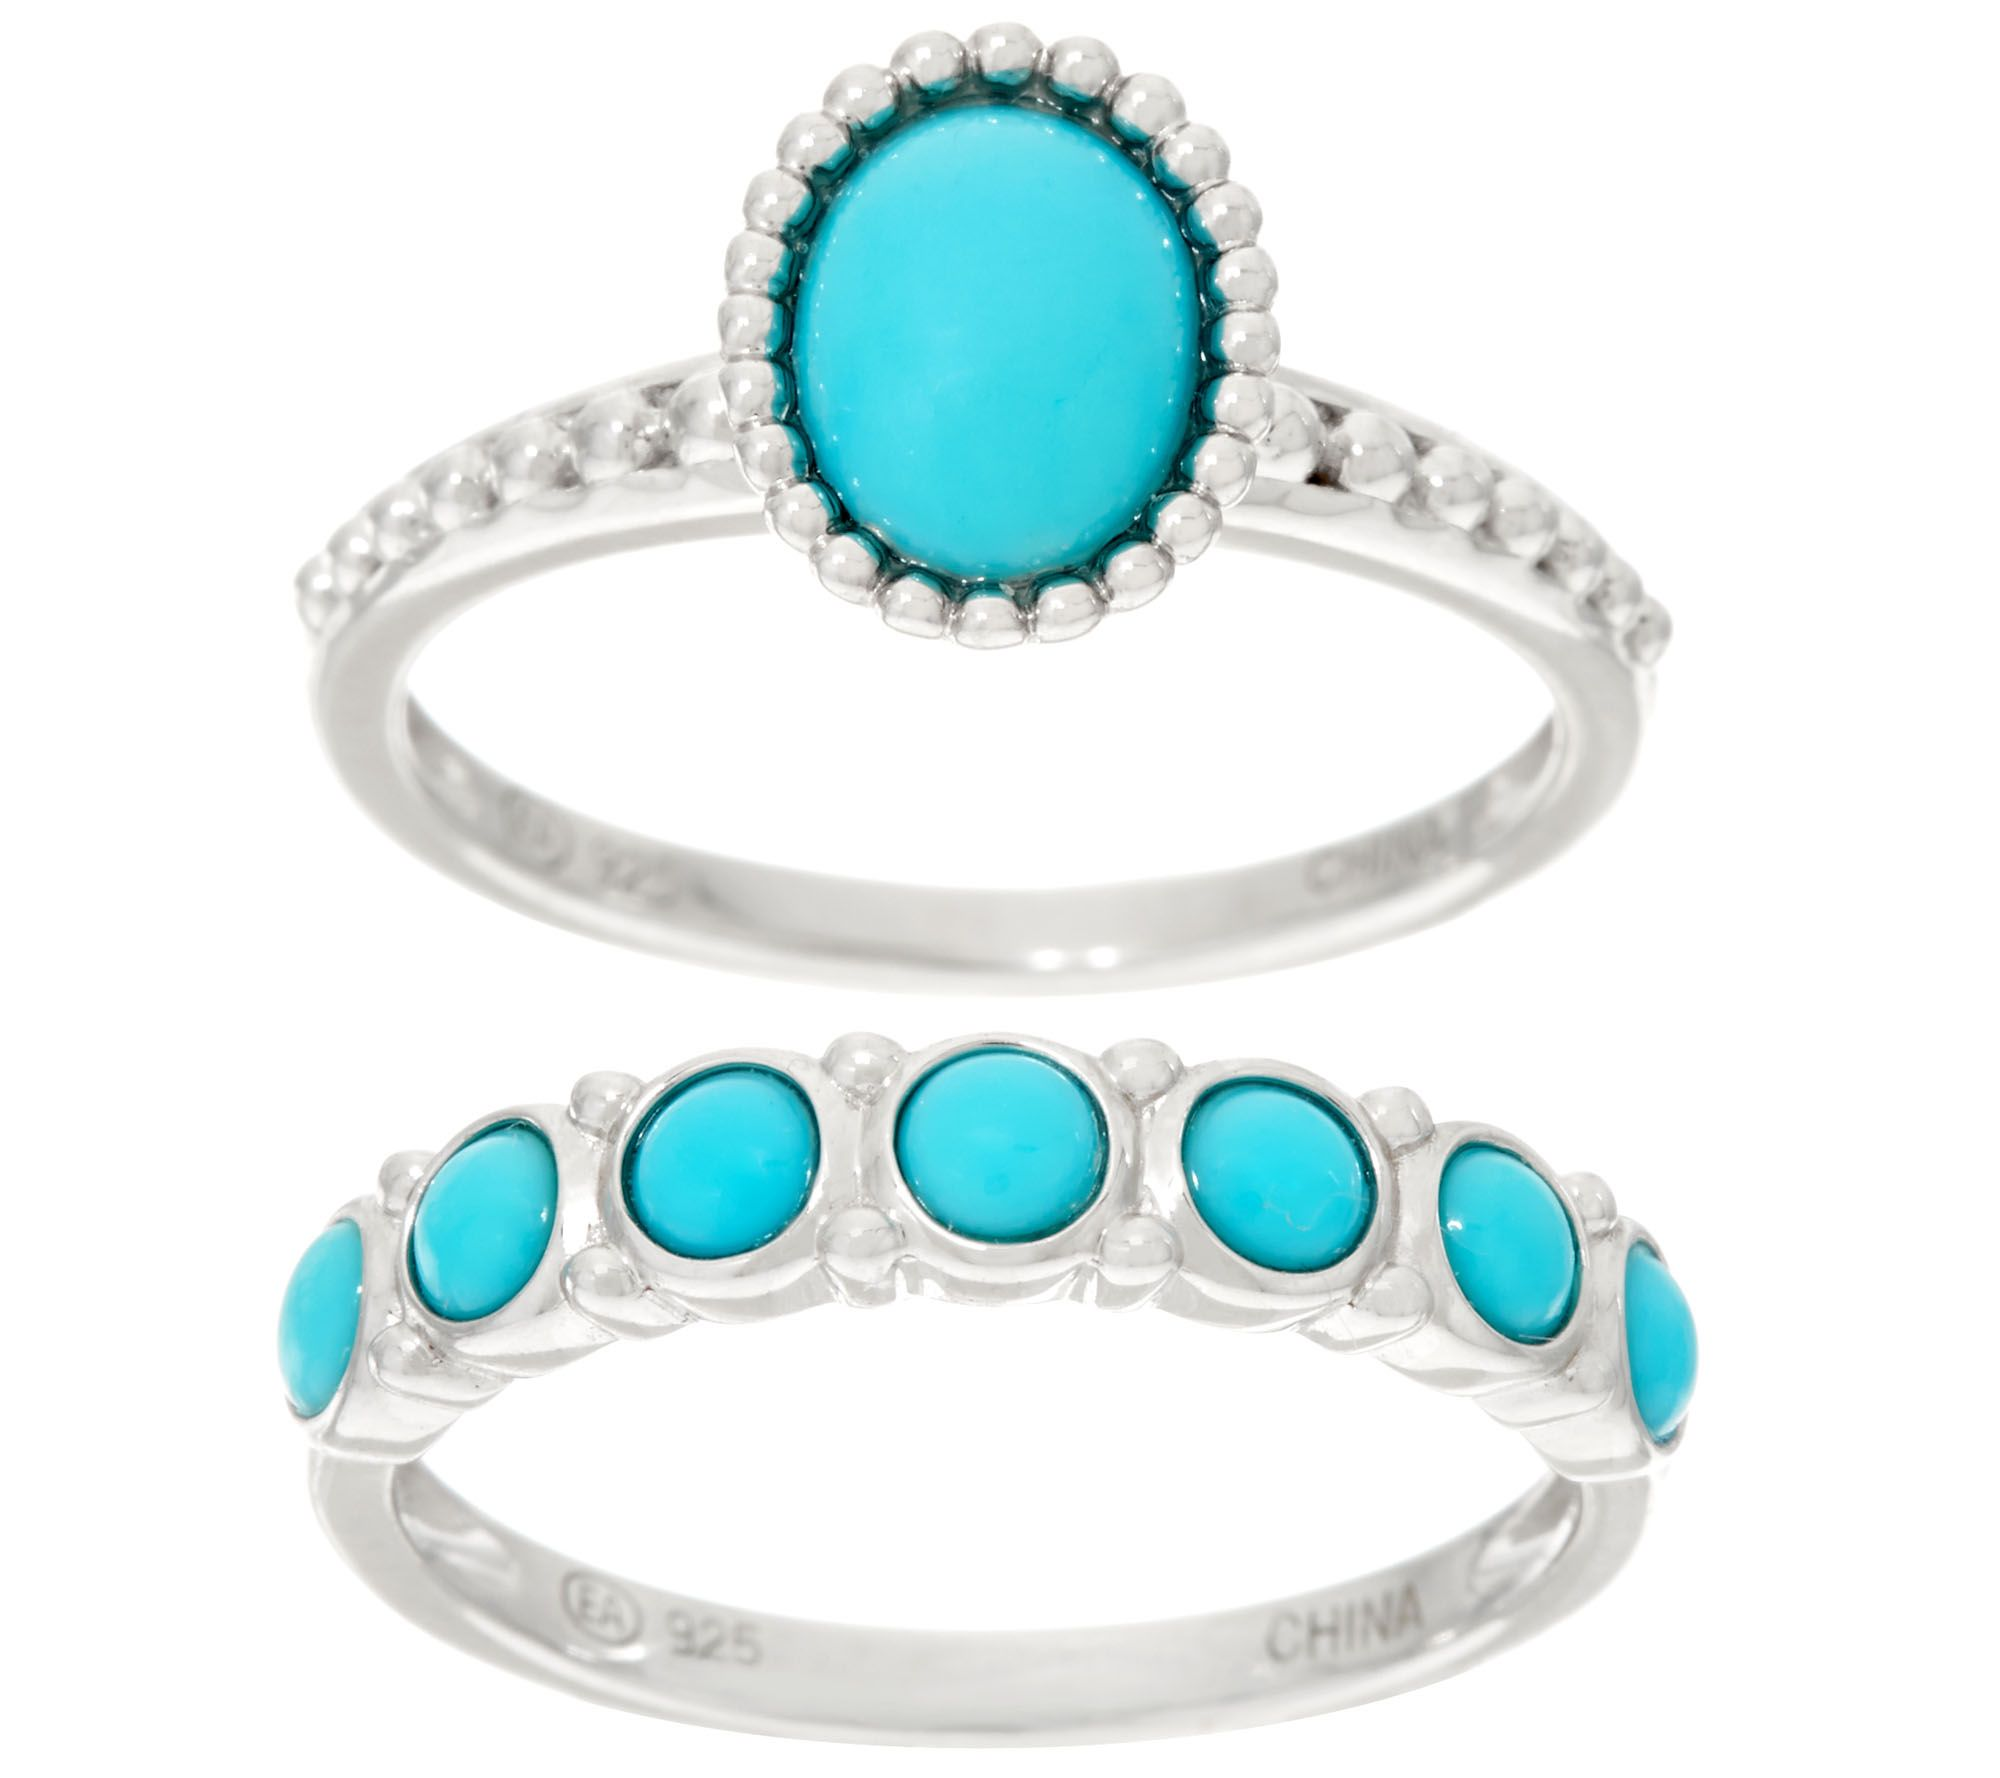 jewelry silver sterling ring rings turquoise stone